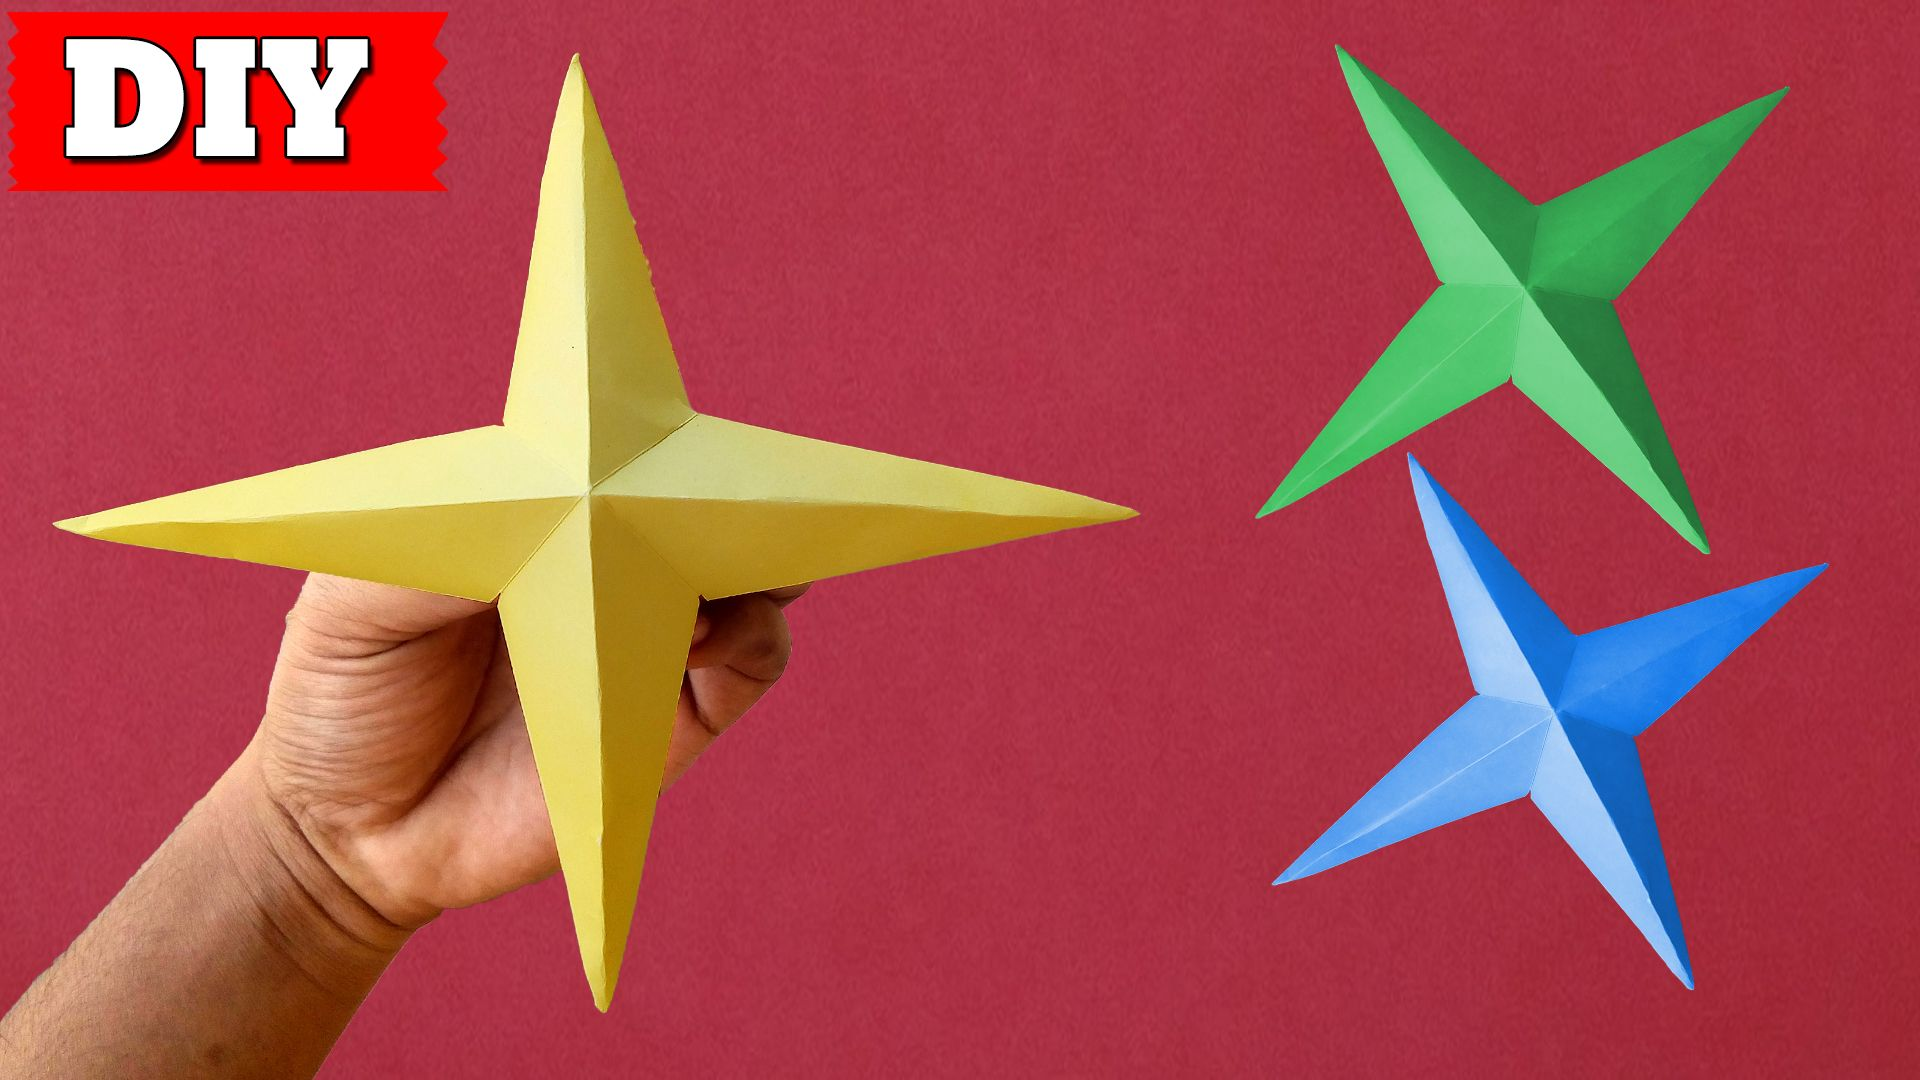 In This Video You Ll Learn How To Make 3d Paper Star Easy Step By